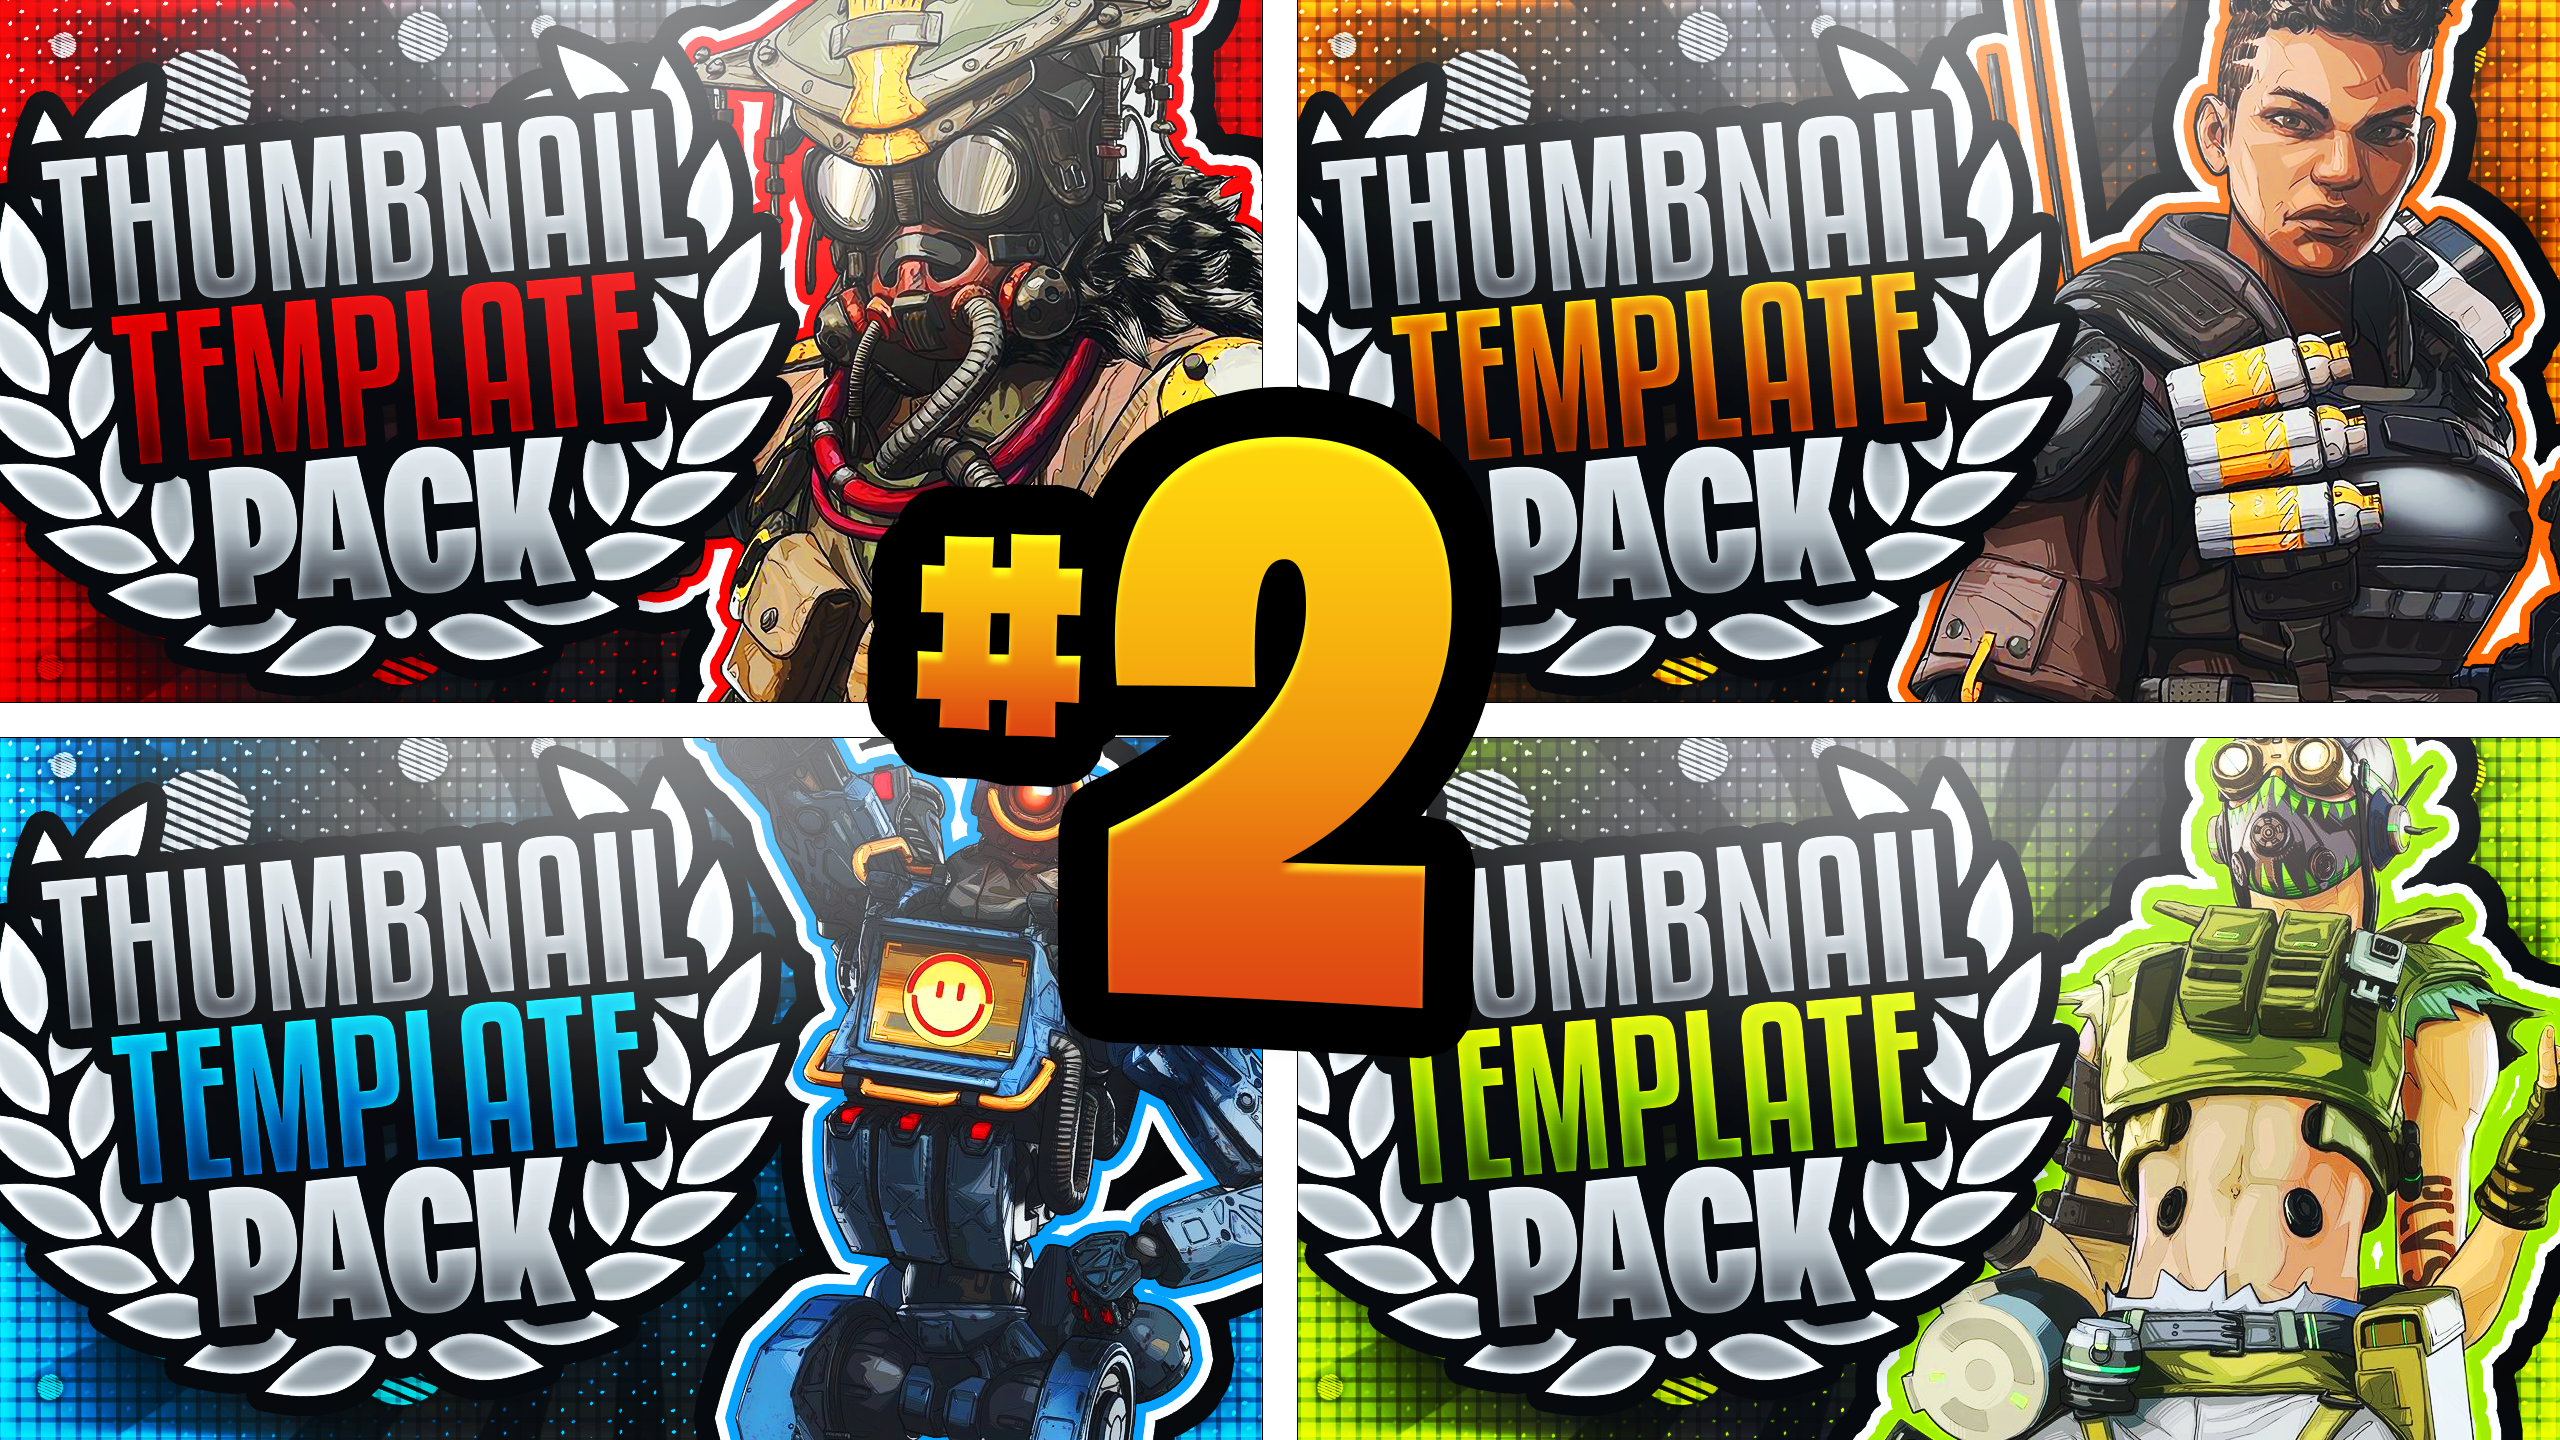 Apex Legends Youtube Thumbnail Template Pack 2 Photoshop Template Youtube Thumbnail Youtube Thumbnail Template Thumbnail Design